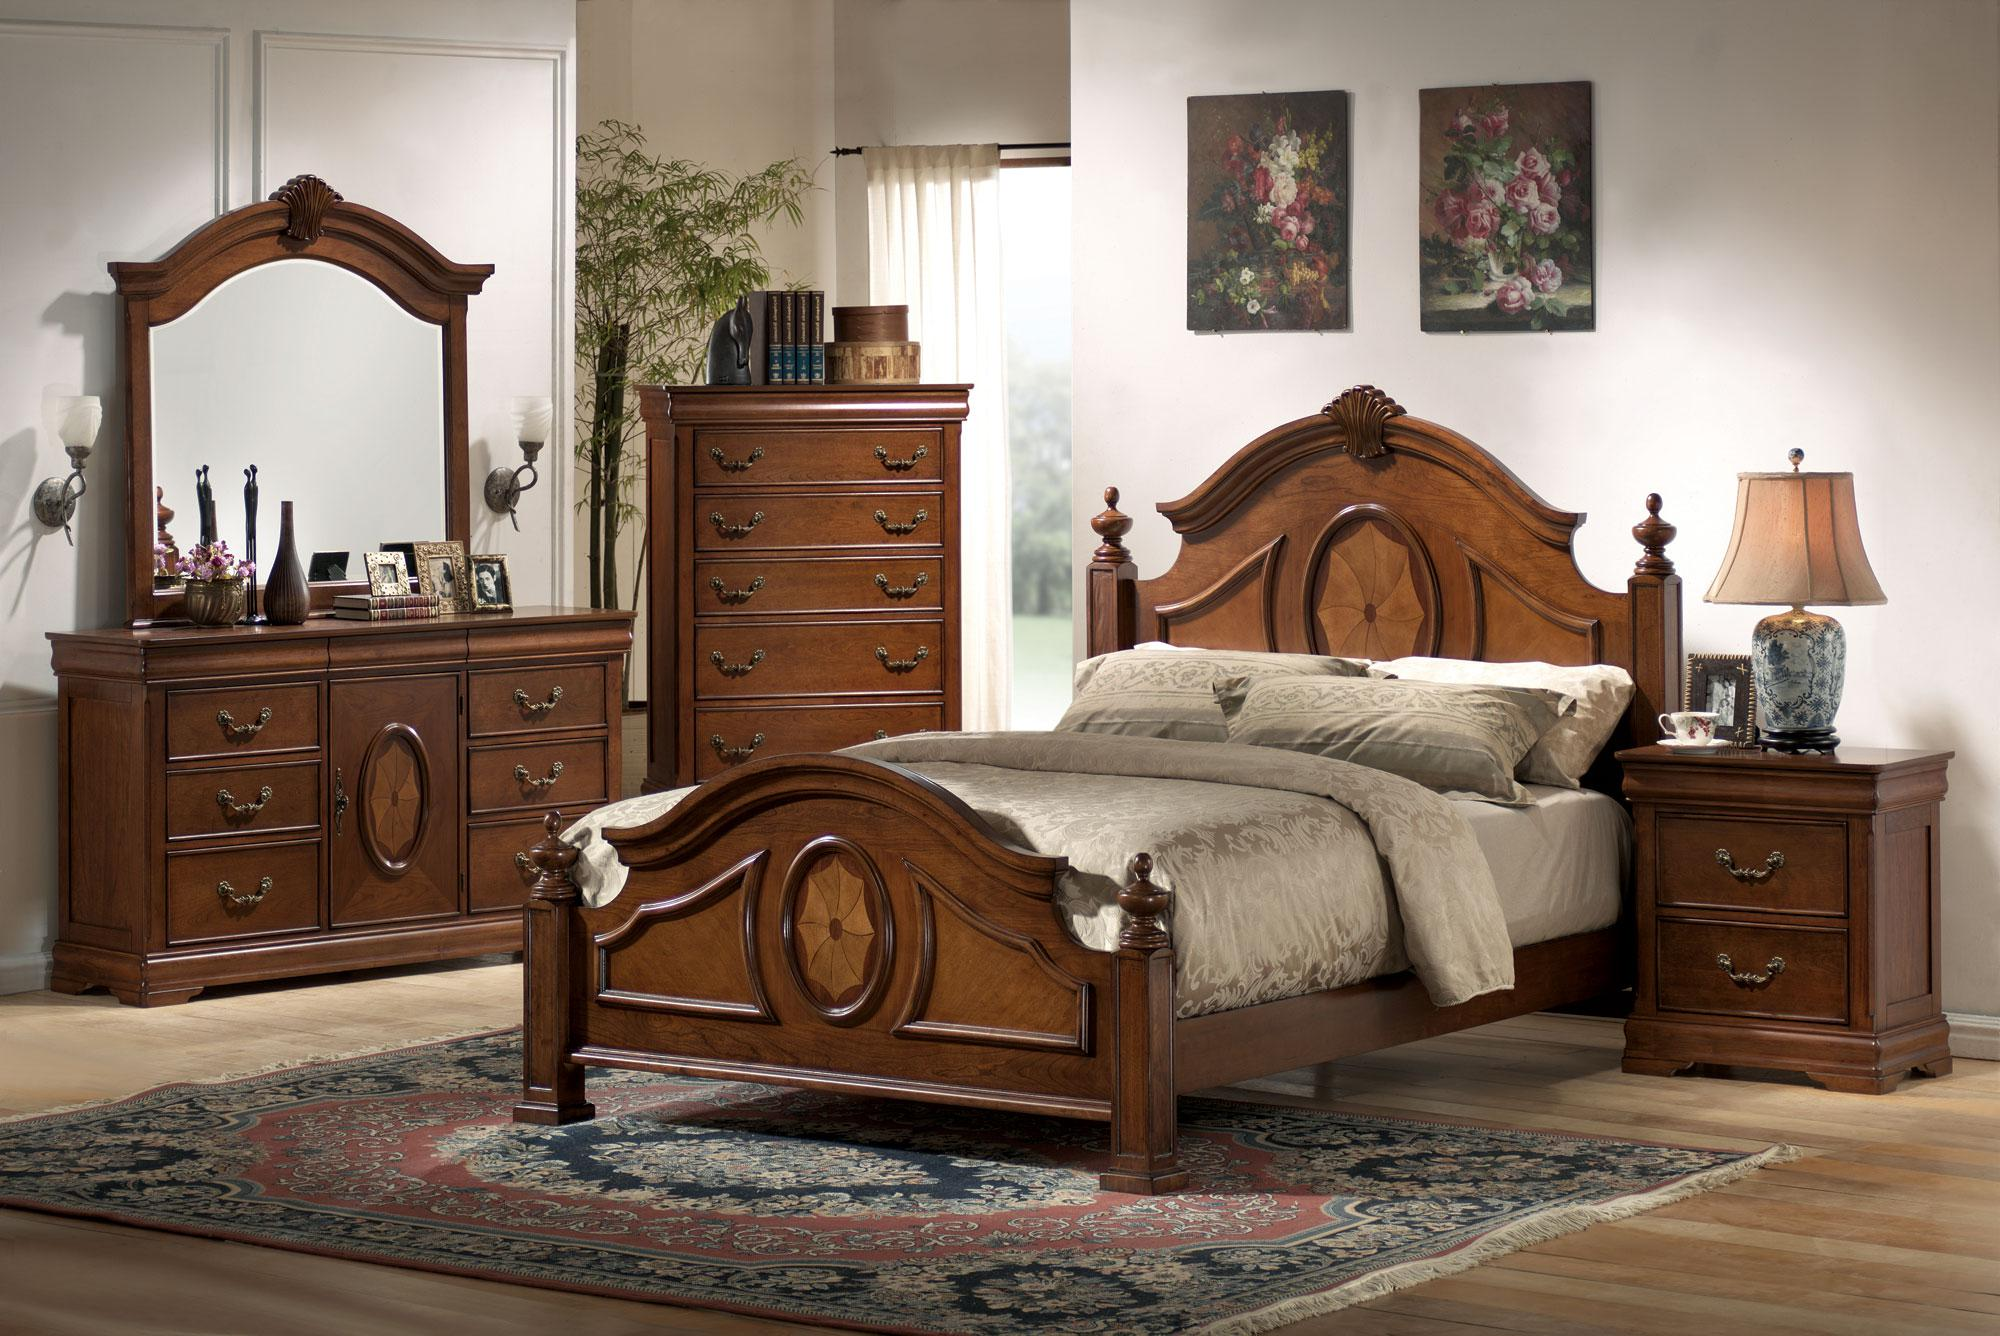 Image of: Cheap Queen Size Bedroom Furniture Sets